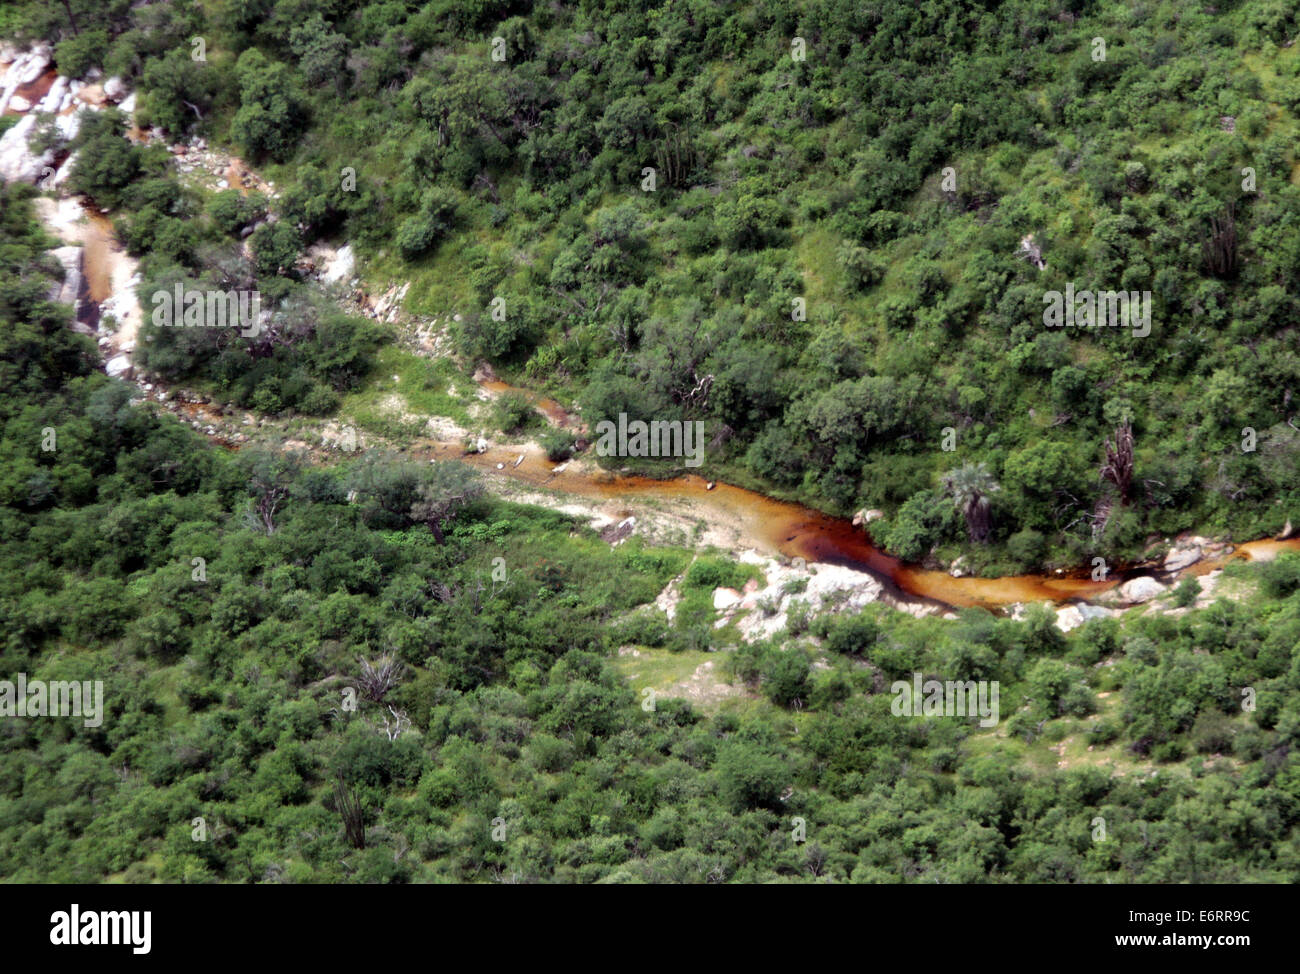 (140830) -- SONORA, Aug. 30, 2014 (Xinhua) -- Image taken on Aug. 12, 2014, showsthe aerial view of the Sonora River - Stock Image